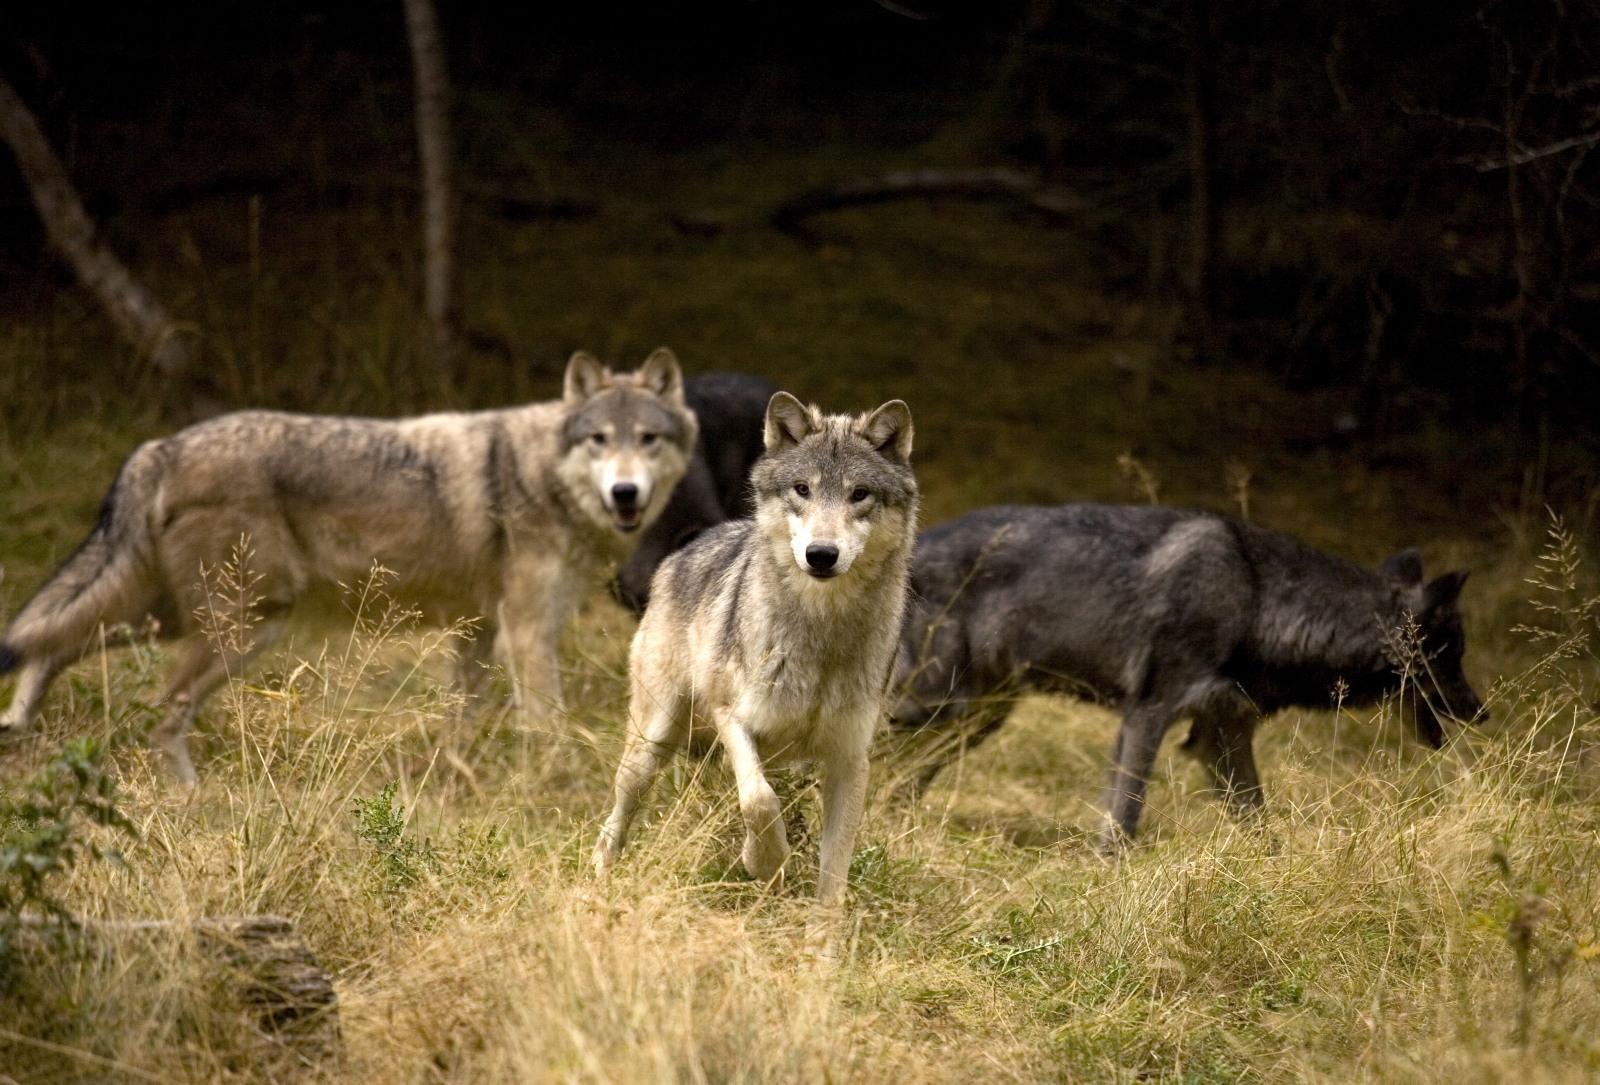 Wolves in Alaska's Denali National Park